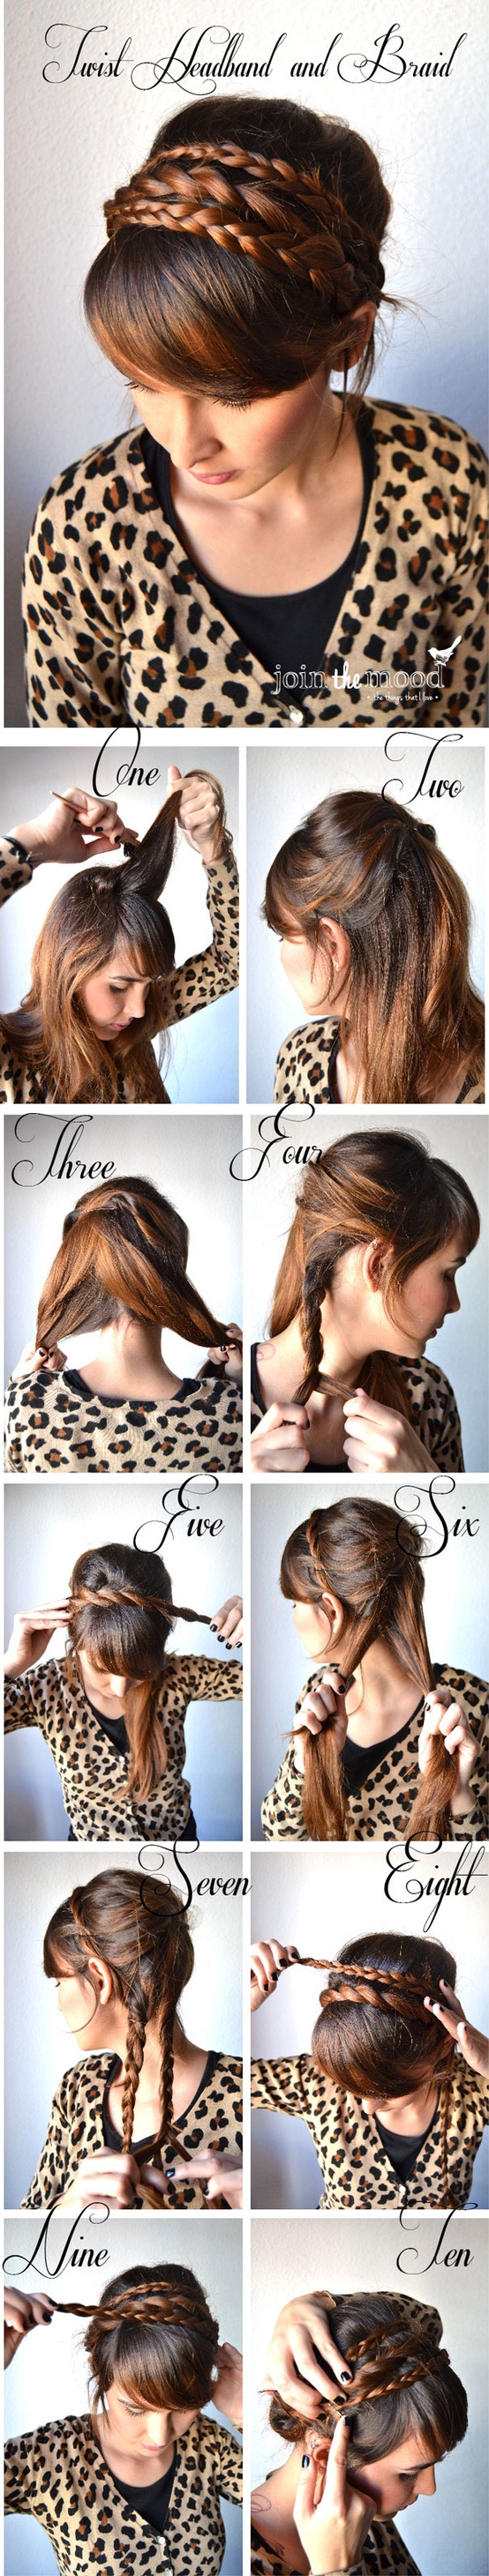 A Collection of 20 Chic Hairstyles for All Occasions --Braided Headband